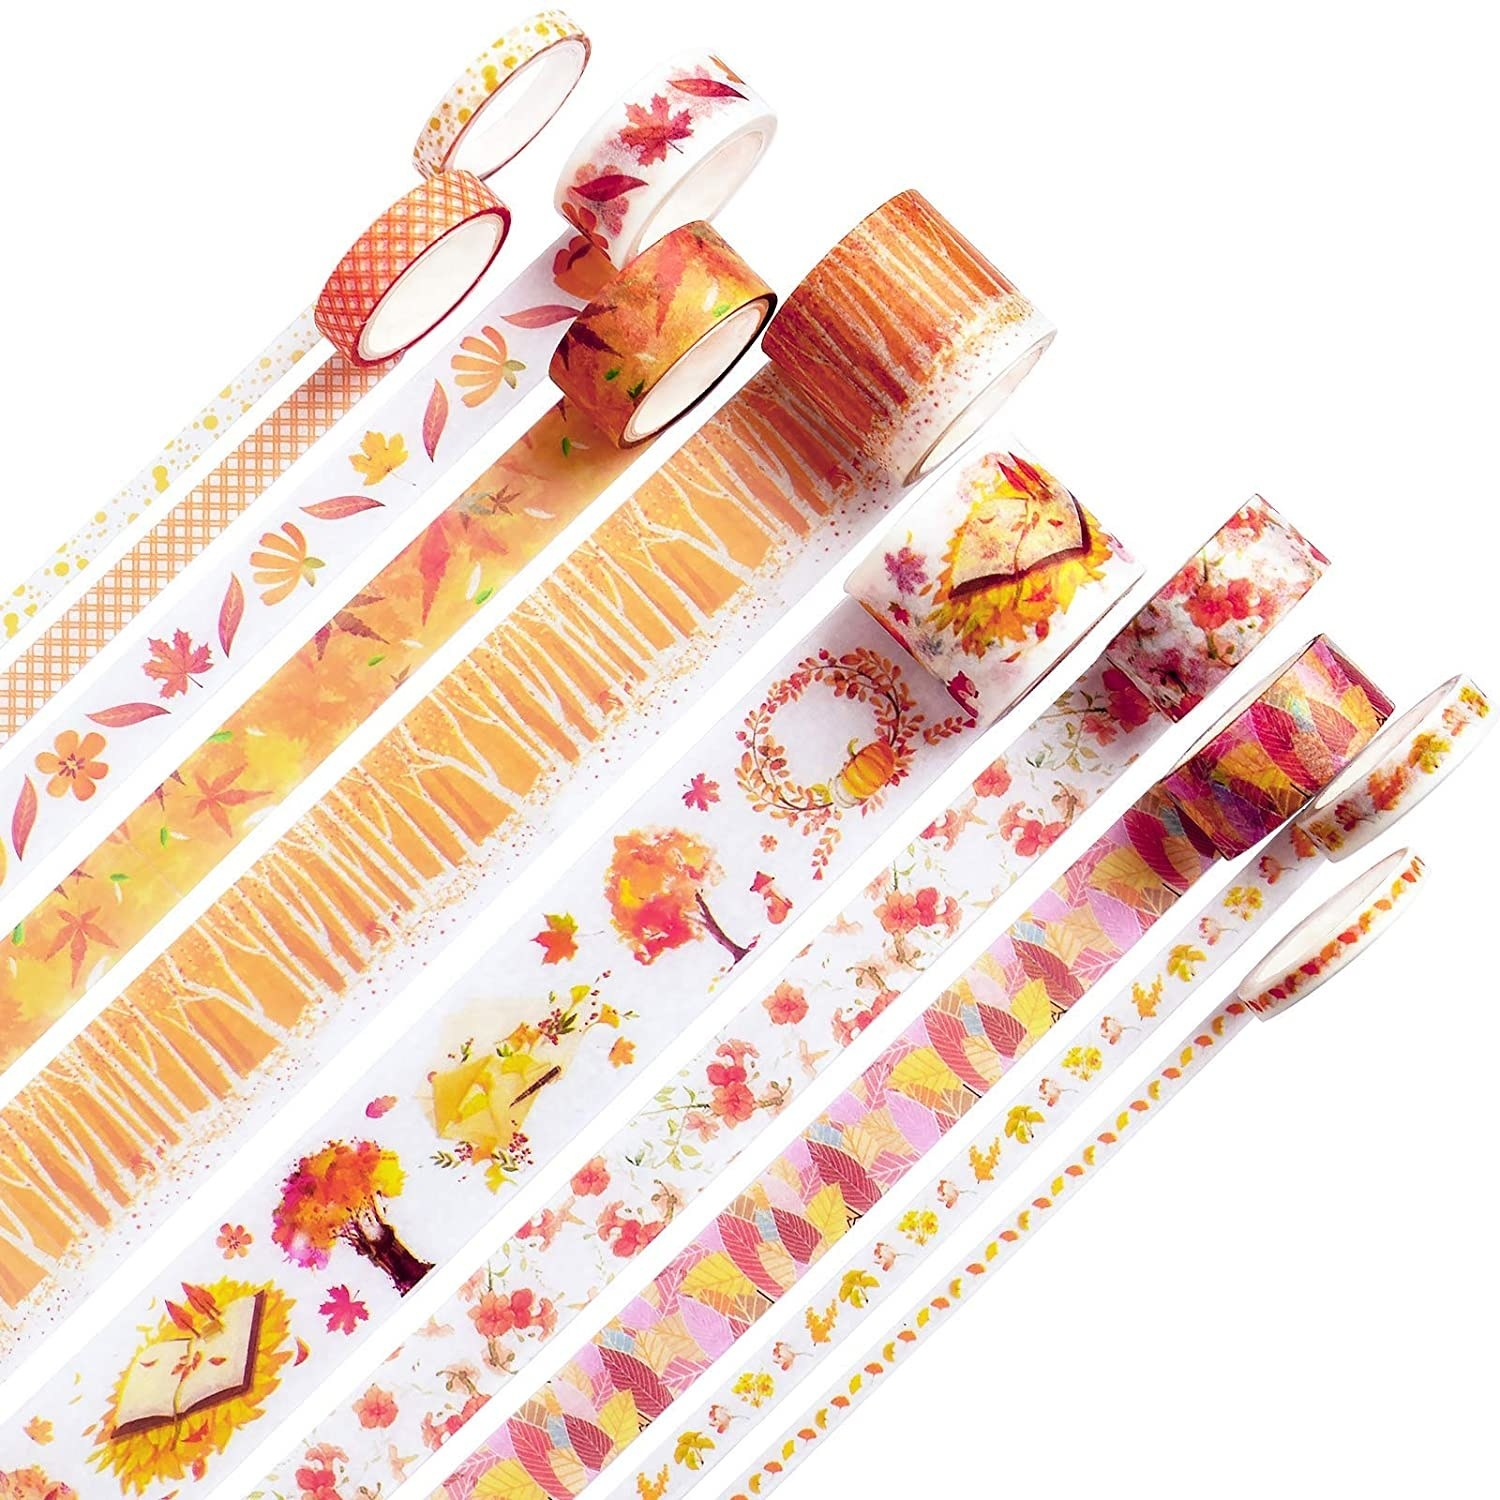 Washi tapes with orange, red, pink, and yellow floral designs